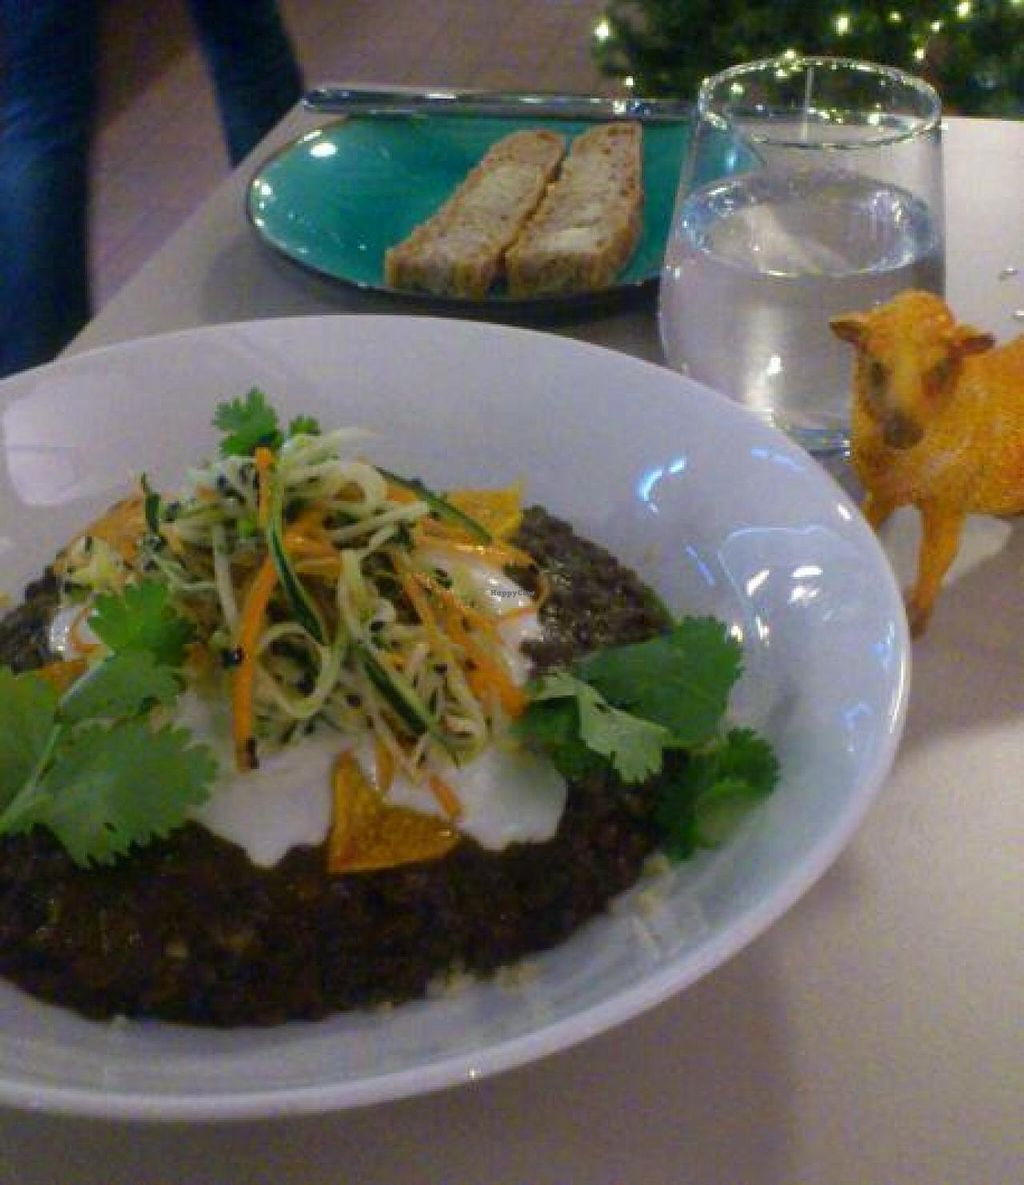 """Photo of Roots Kitchen  by <a href=""""/members/profile/vagabond%20baker"""">vagabond baker</a> <br/>delicious lentil curry at Roots Kitchen <br/> December 8, 2014  - <a href='/contact/abuse/image/52926/87476'>Report</a>"""